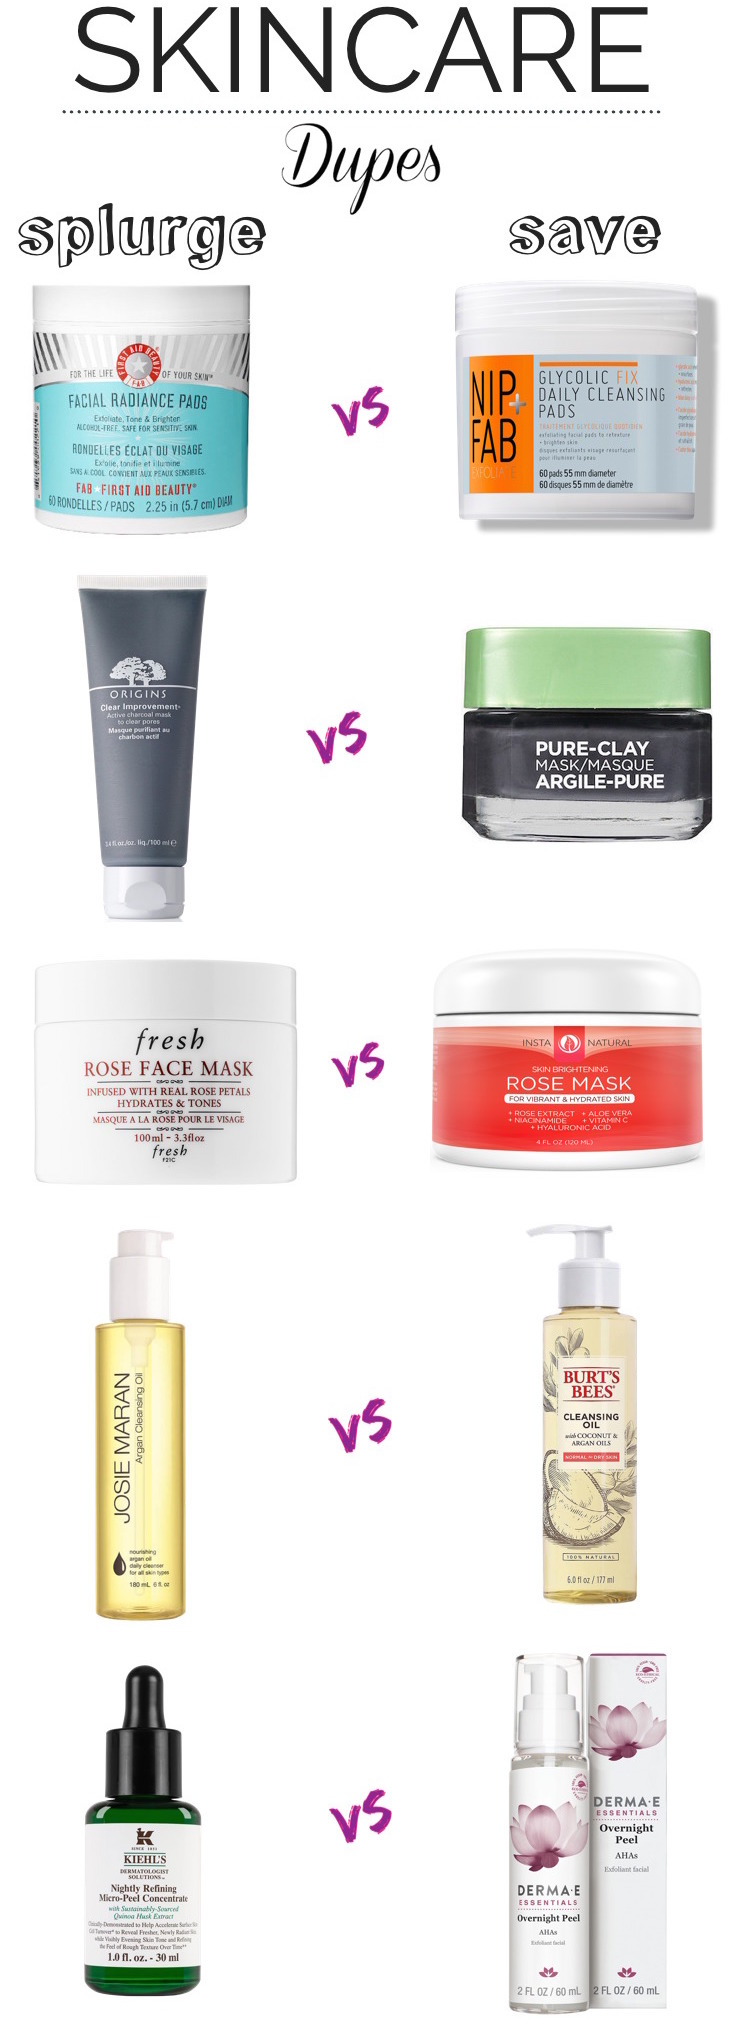 10 affordable alternatives for expensive skincare products! Swap your luxe skincare products for these drugstore dupes that work just as well as their high-end counterparts!